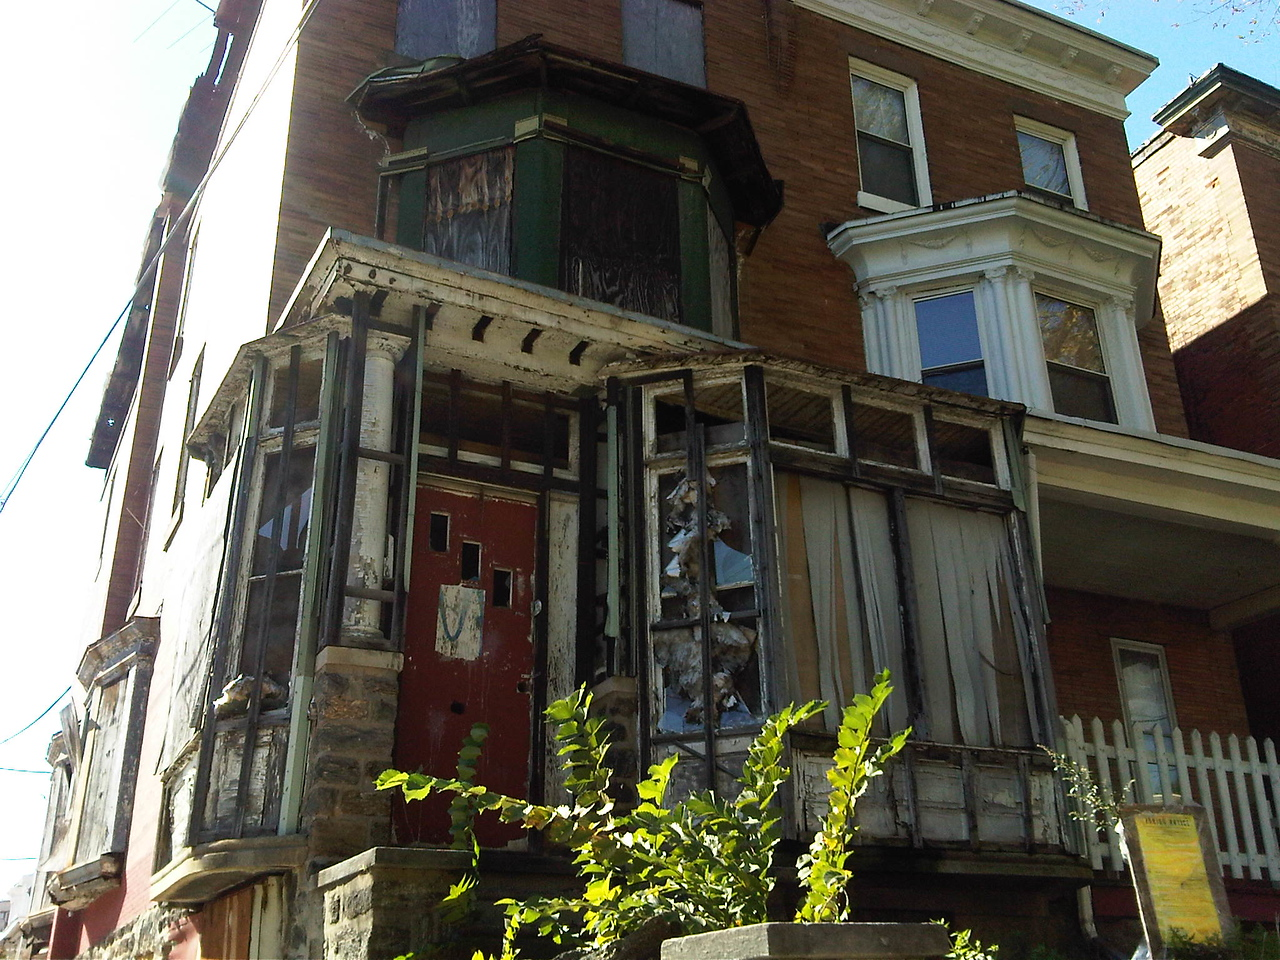 The home on Greene Street before the YouthBuild Philadelphia renovation project.